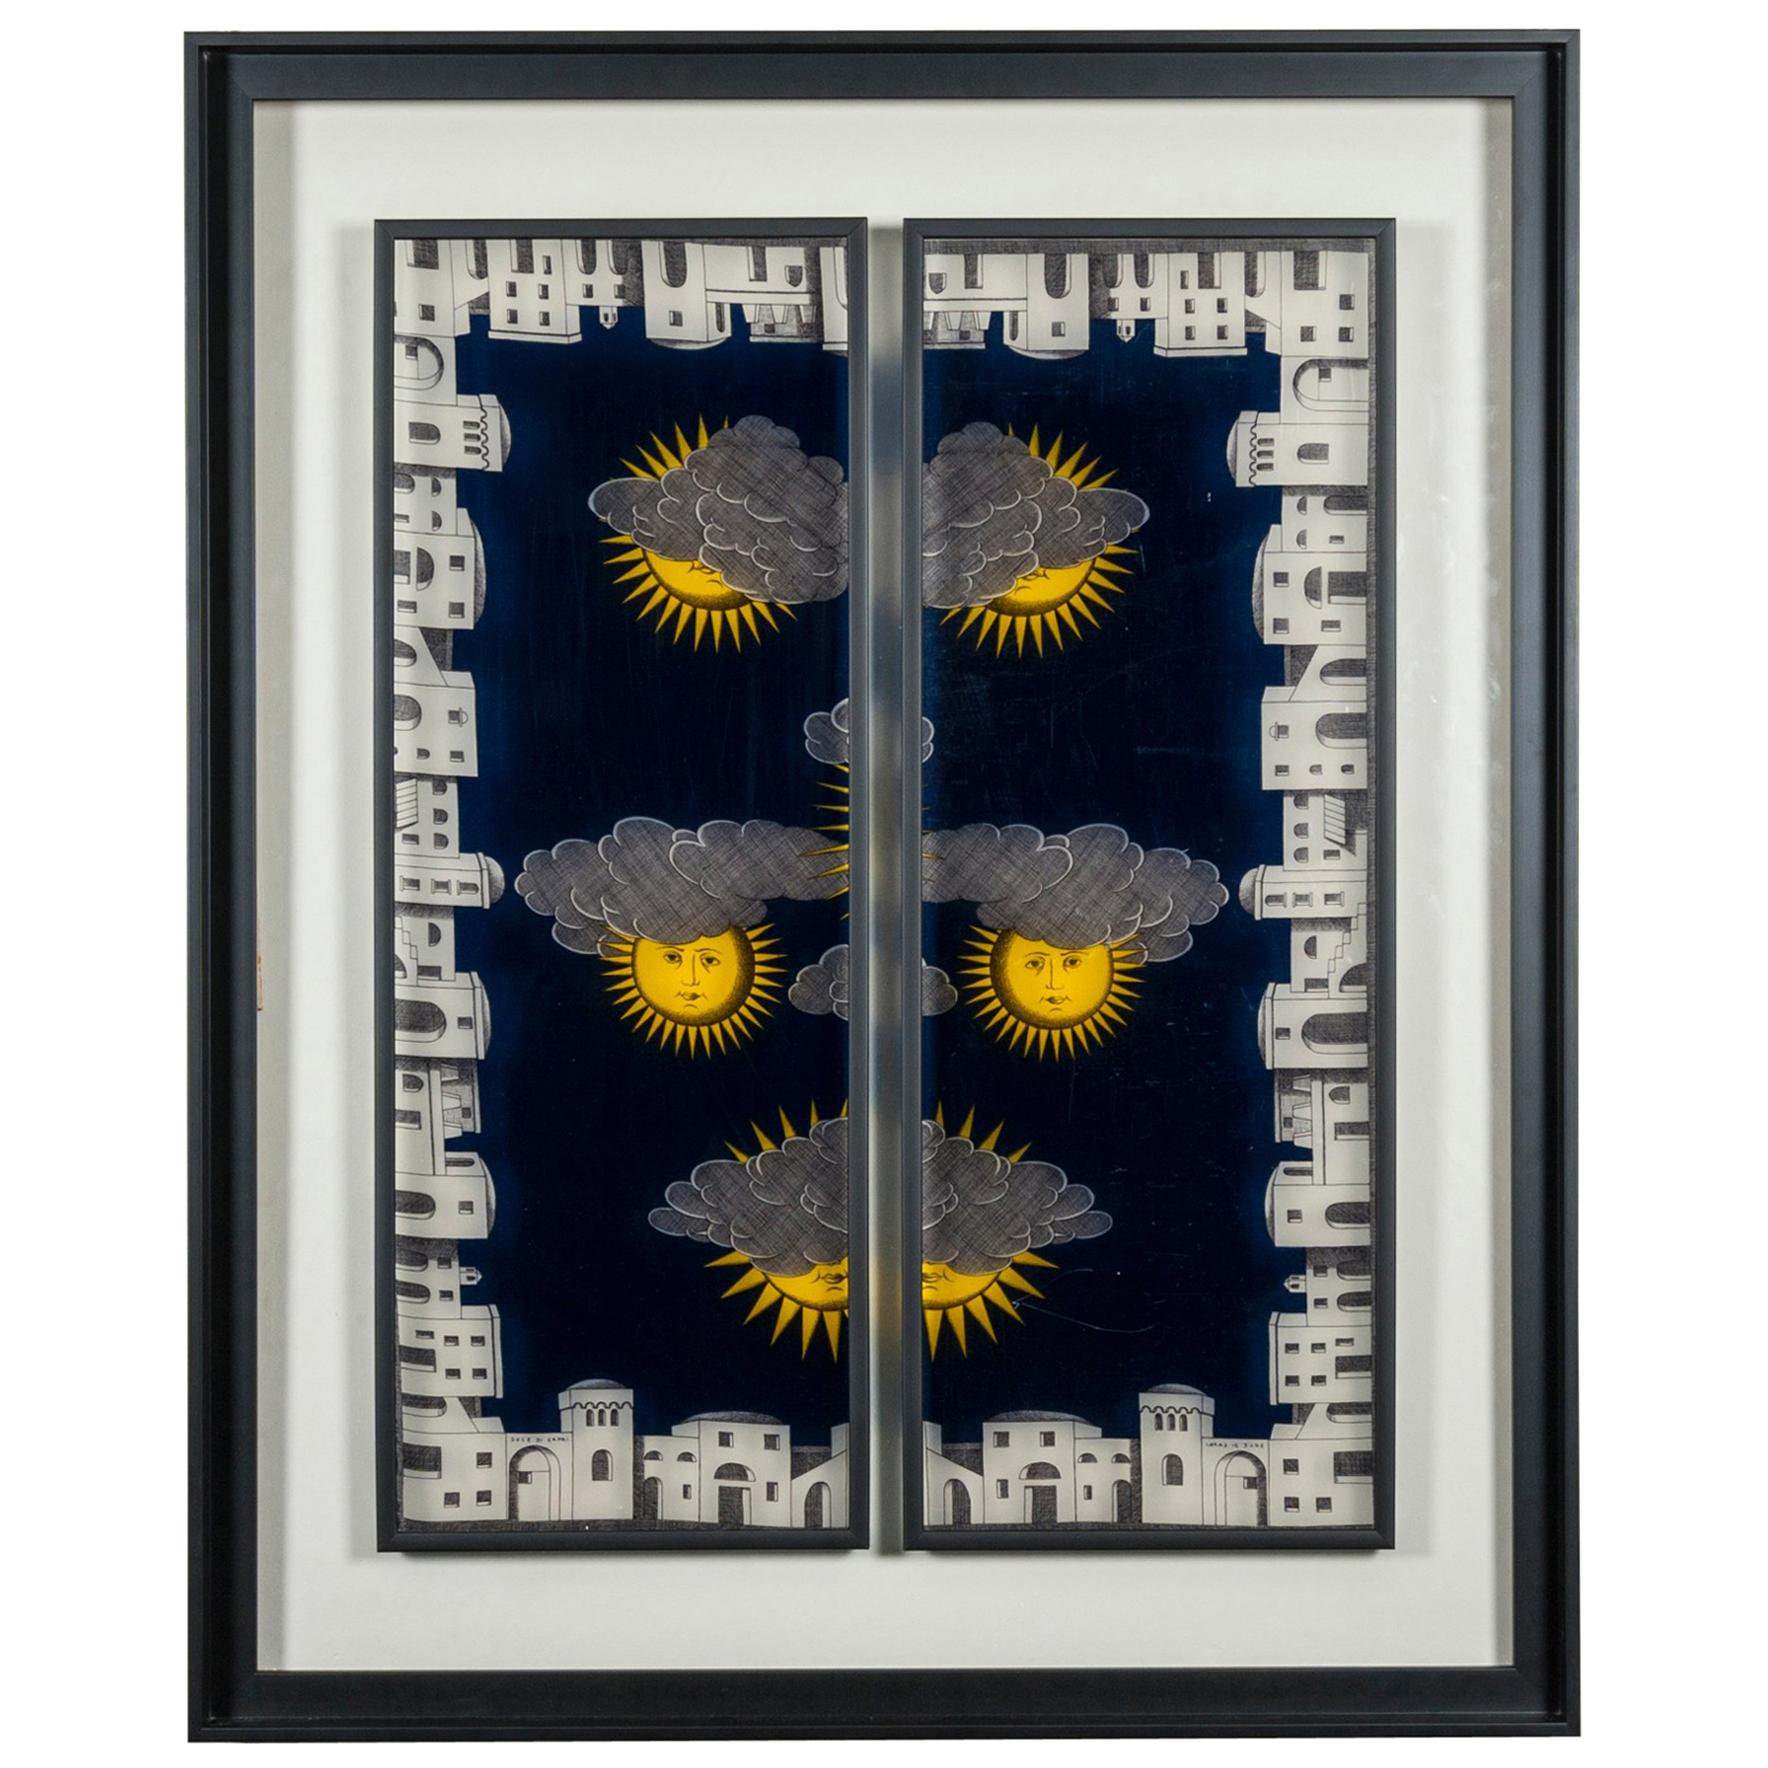 Framed Fornasetti Painted Panels at cost price